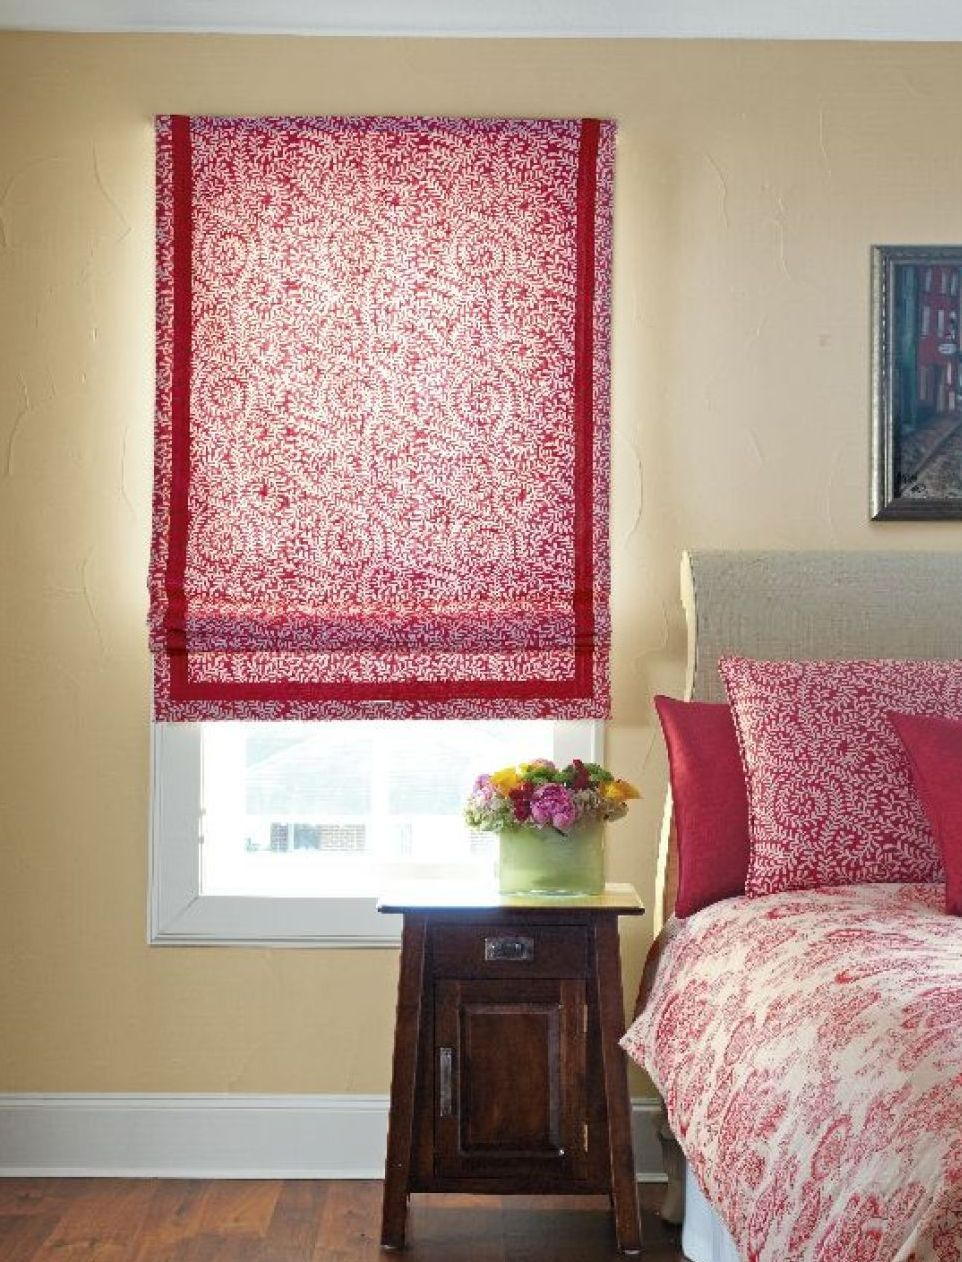 Bedrooms fabric shades pinterest window treatments - Shades of pink for bedroom walls ...